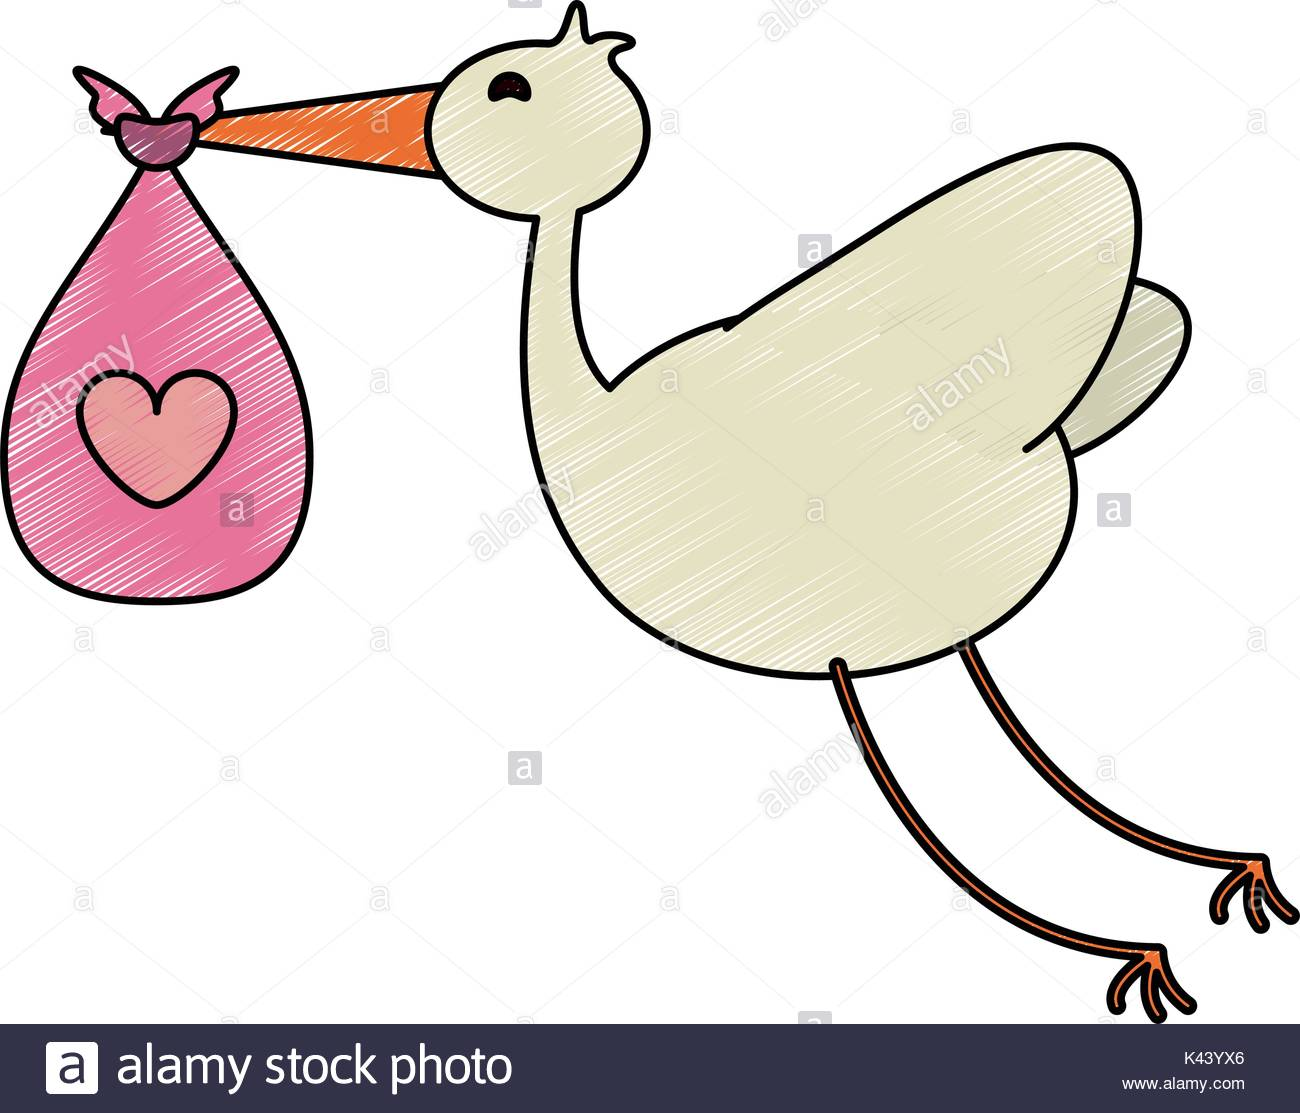 1300x1113 Stork And Baby Stock Photos Amp Stork And Baby Stock Images